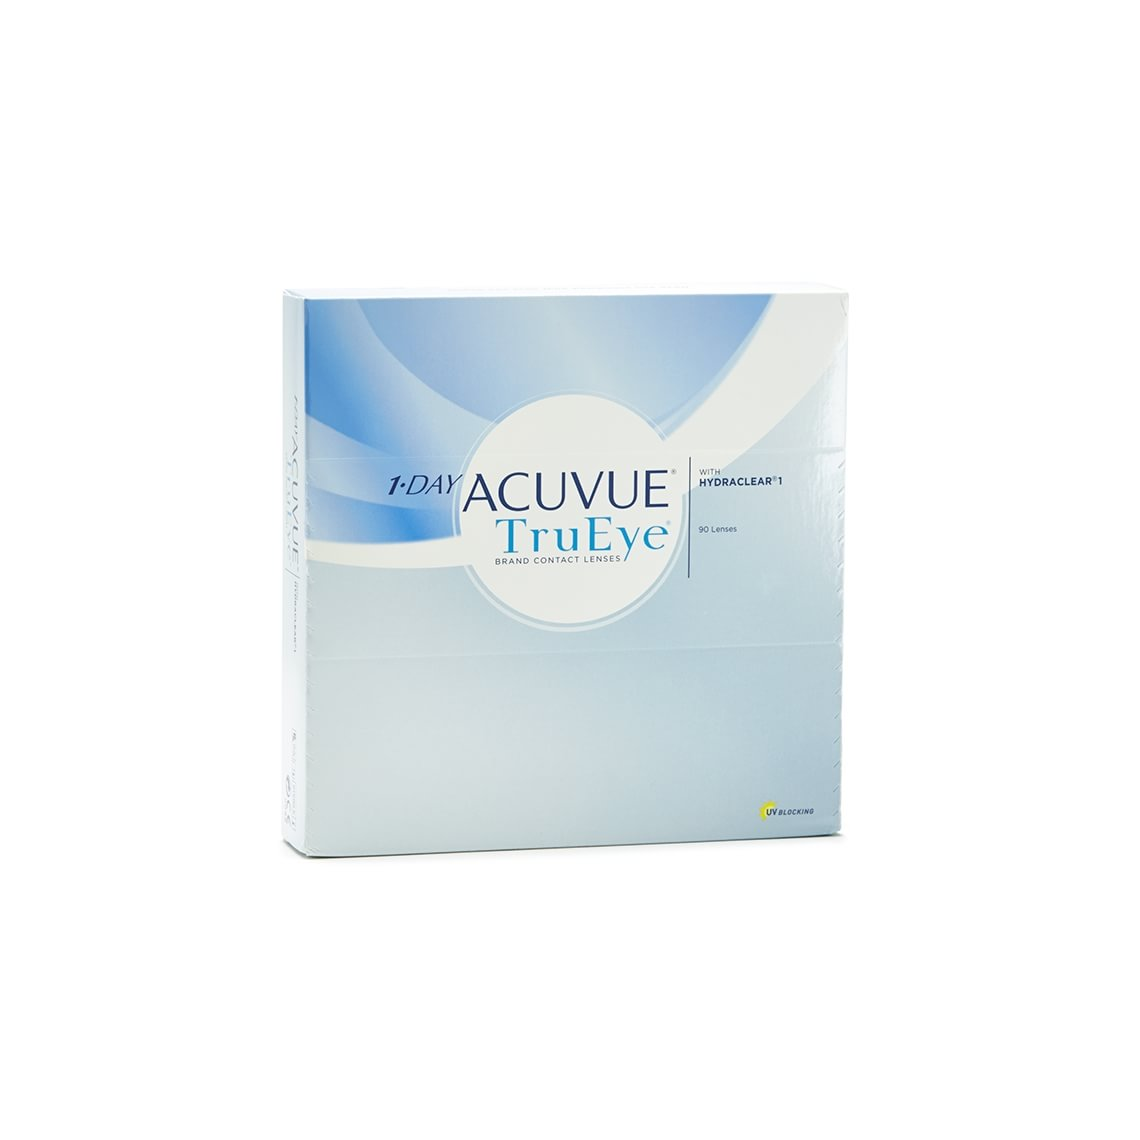 1-Day Acuvue TruEye 90 st/box